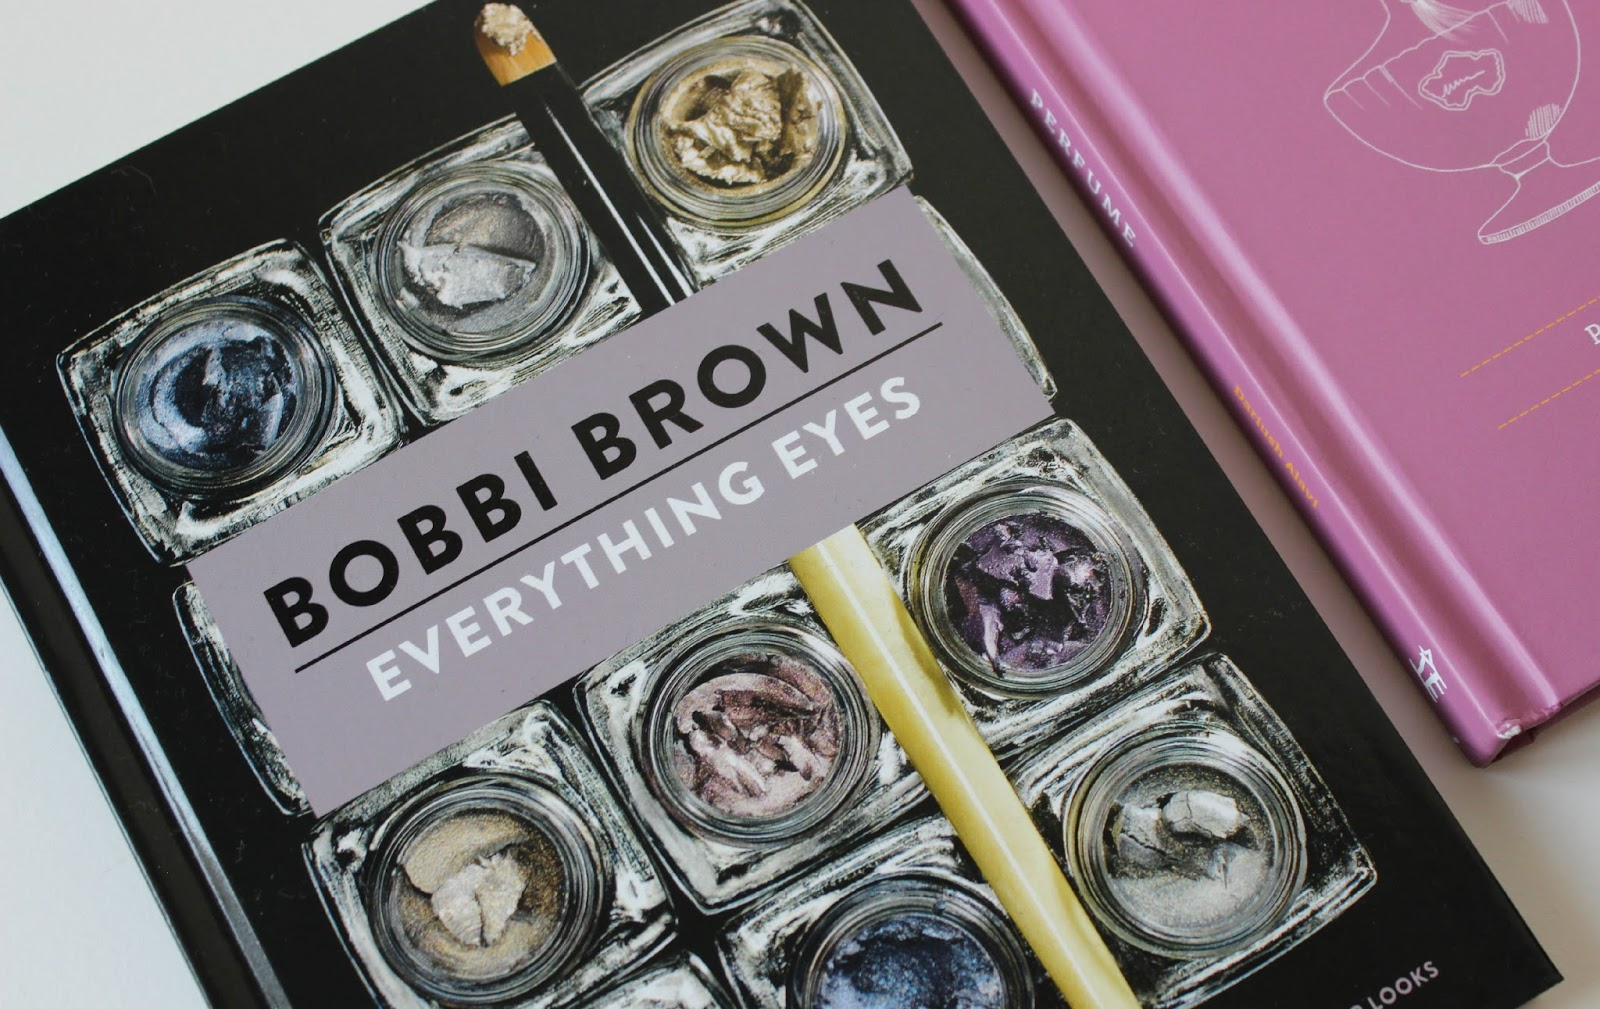 A picture of Bobbi Brown Everything Eyes